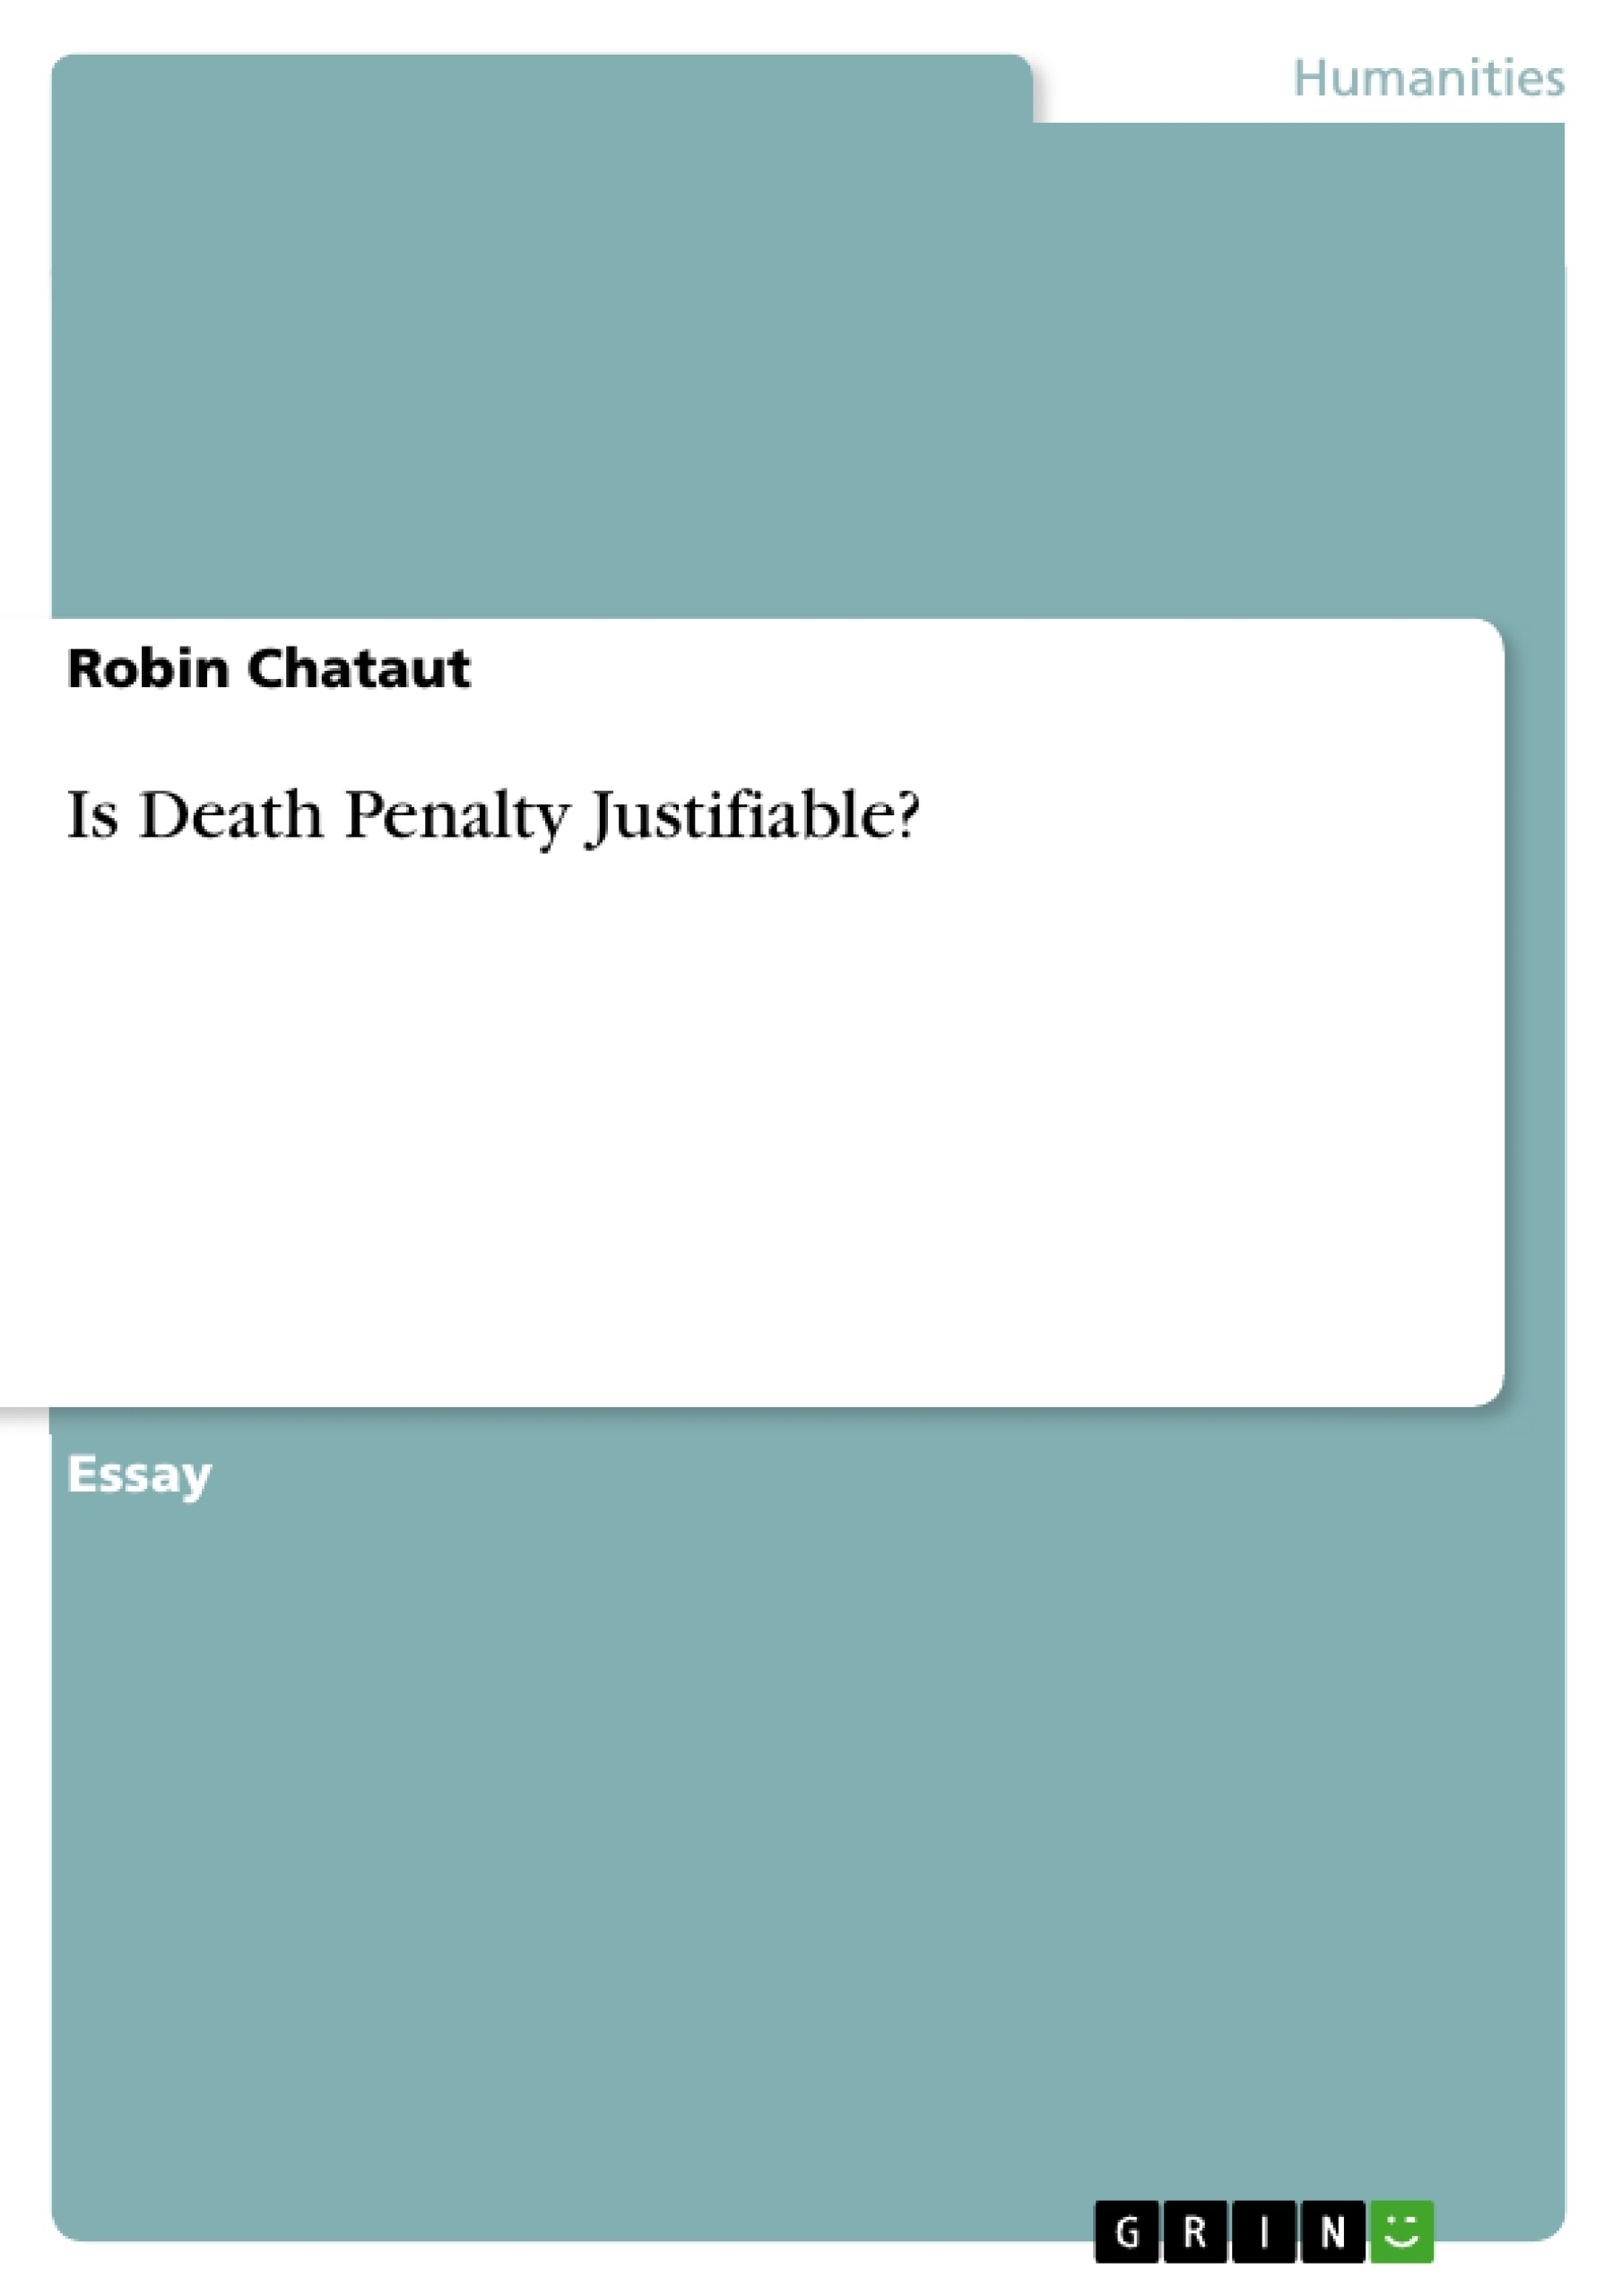 016 295417 0 Essay Example Against Death Unique Penalty Conclusion Full